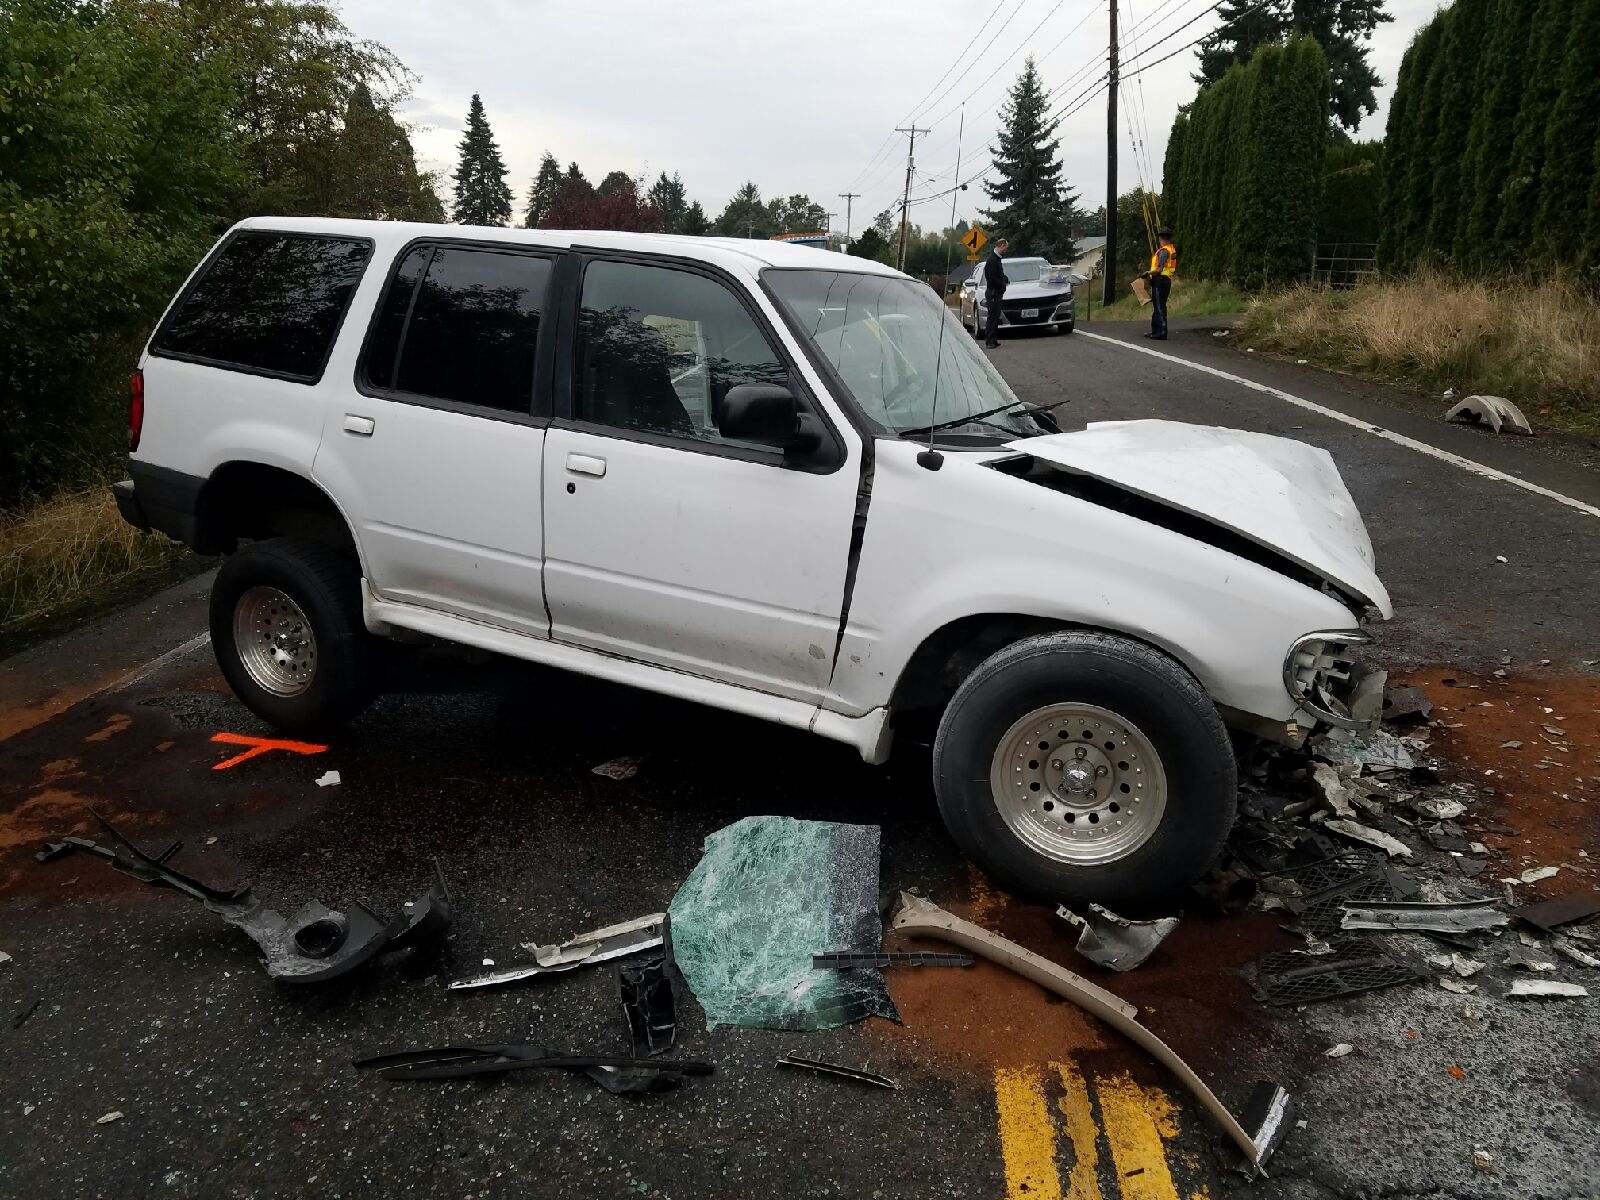 Police are investigating a two-vehicle, head-on collision that closed Highway 212 on Oct. 18, 2017. Photo courtesy Oregon State Police{&amp;nbsp;}<p></p>